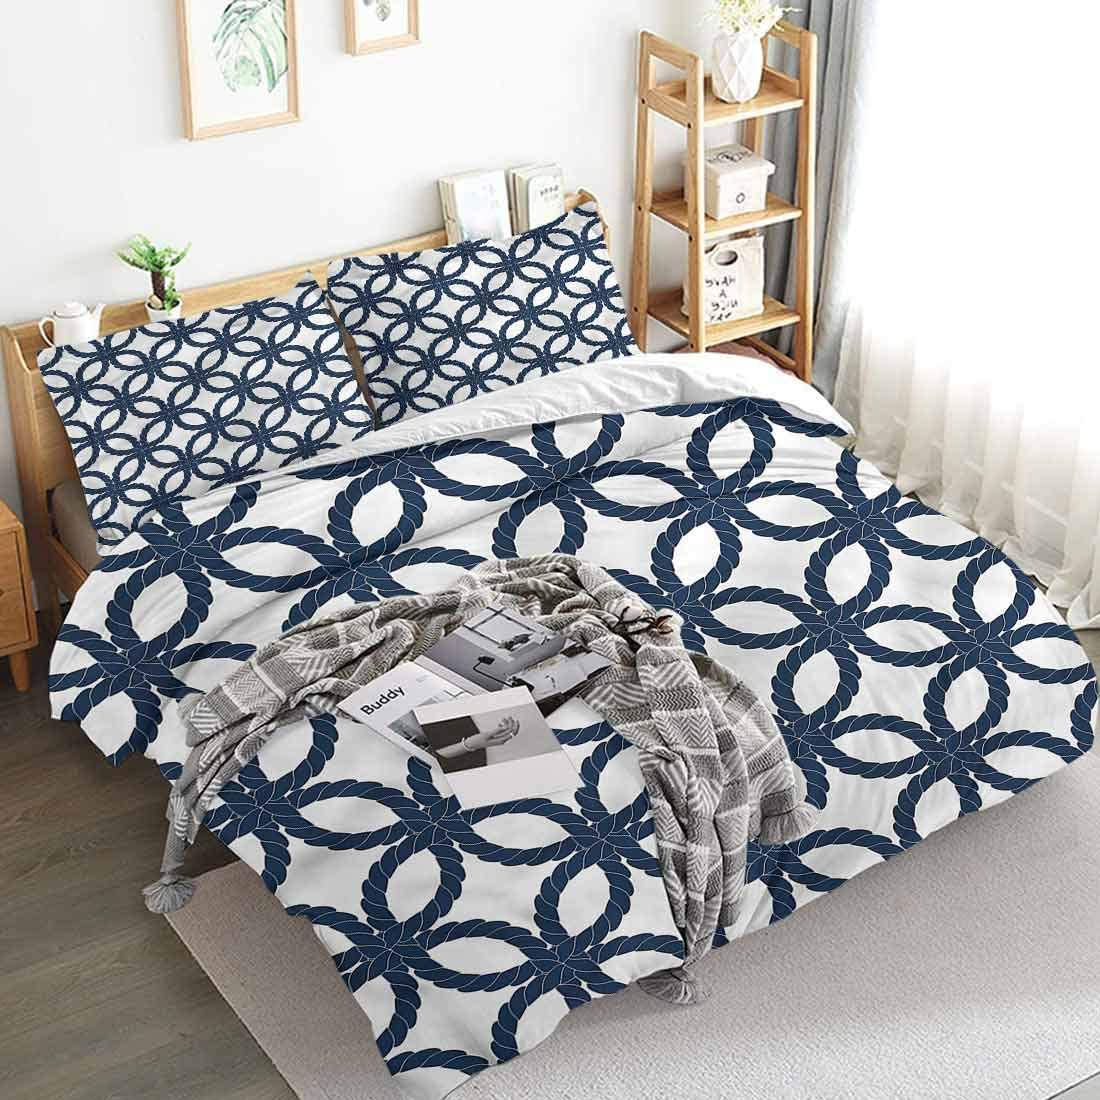 Duvet Cover Navy Blue Twisted Marine Rope Motif Microfiber with Zip Closure,Three-Piece Quilt Cover 68x86 inch Soft and Breathable